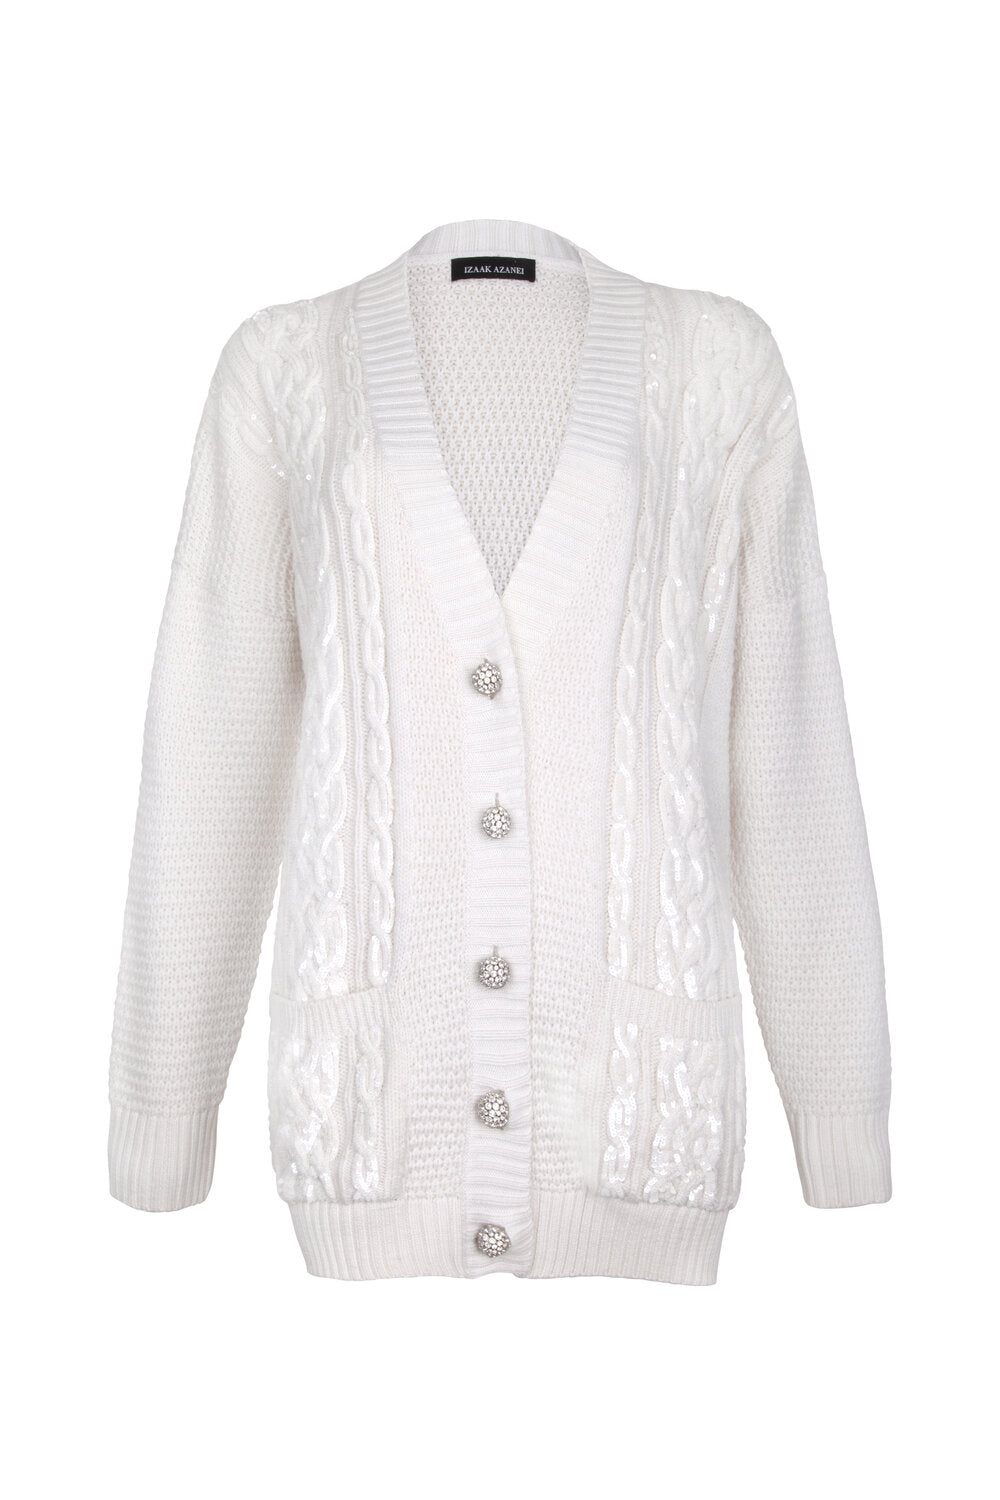 White Sequin Embellished Cable Cardigan